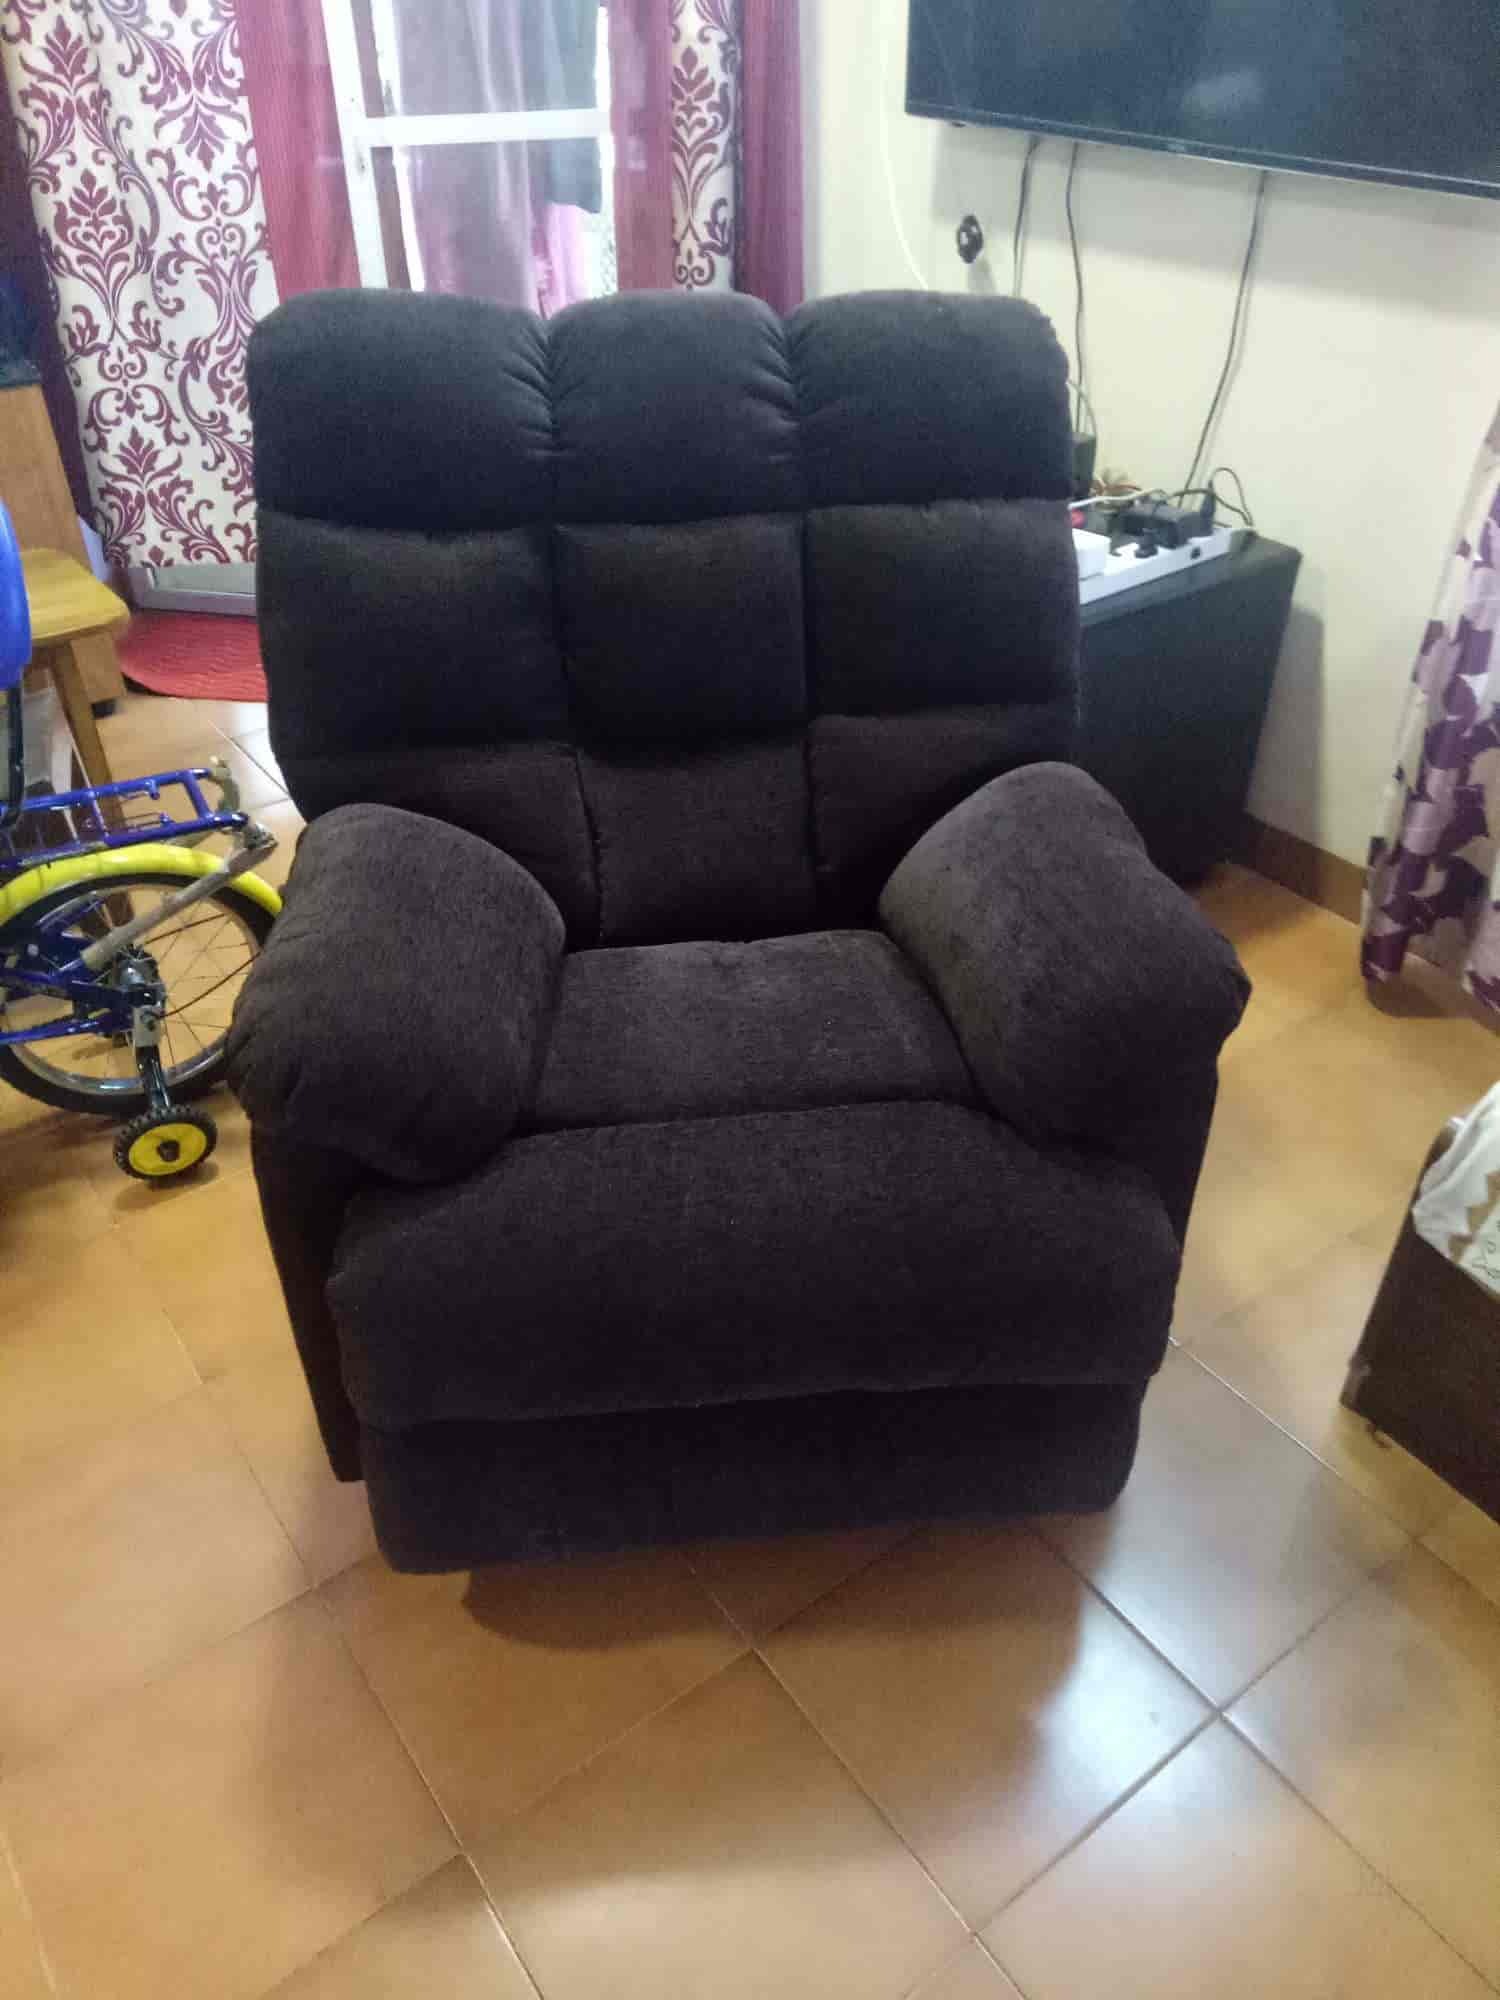 Recliner Sofa Repair Chennai The Smart Guindy Sofa Repair Services In Chennai Justdial